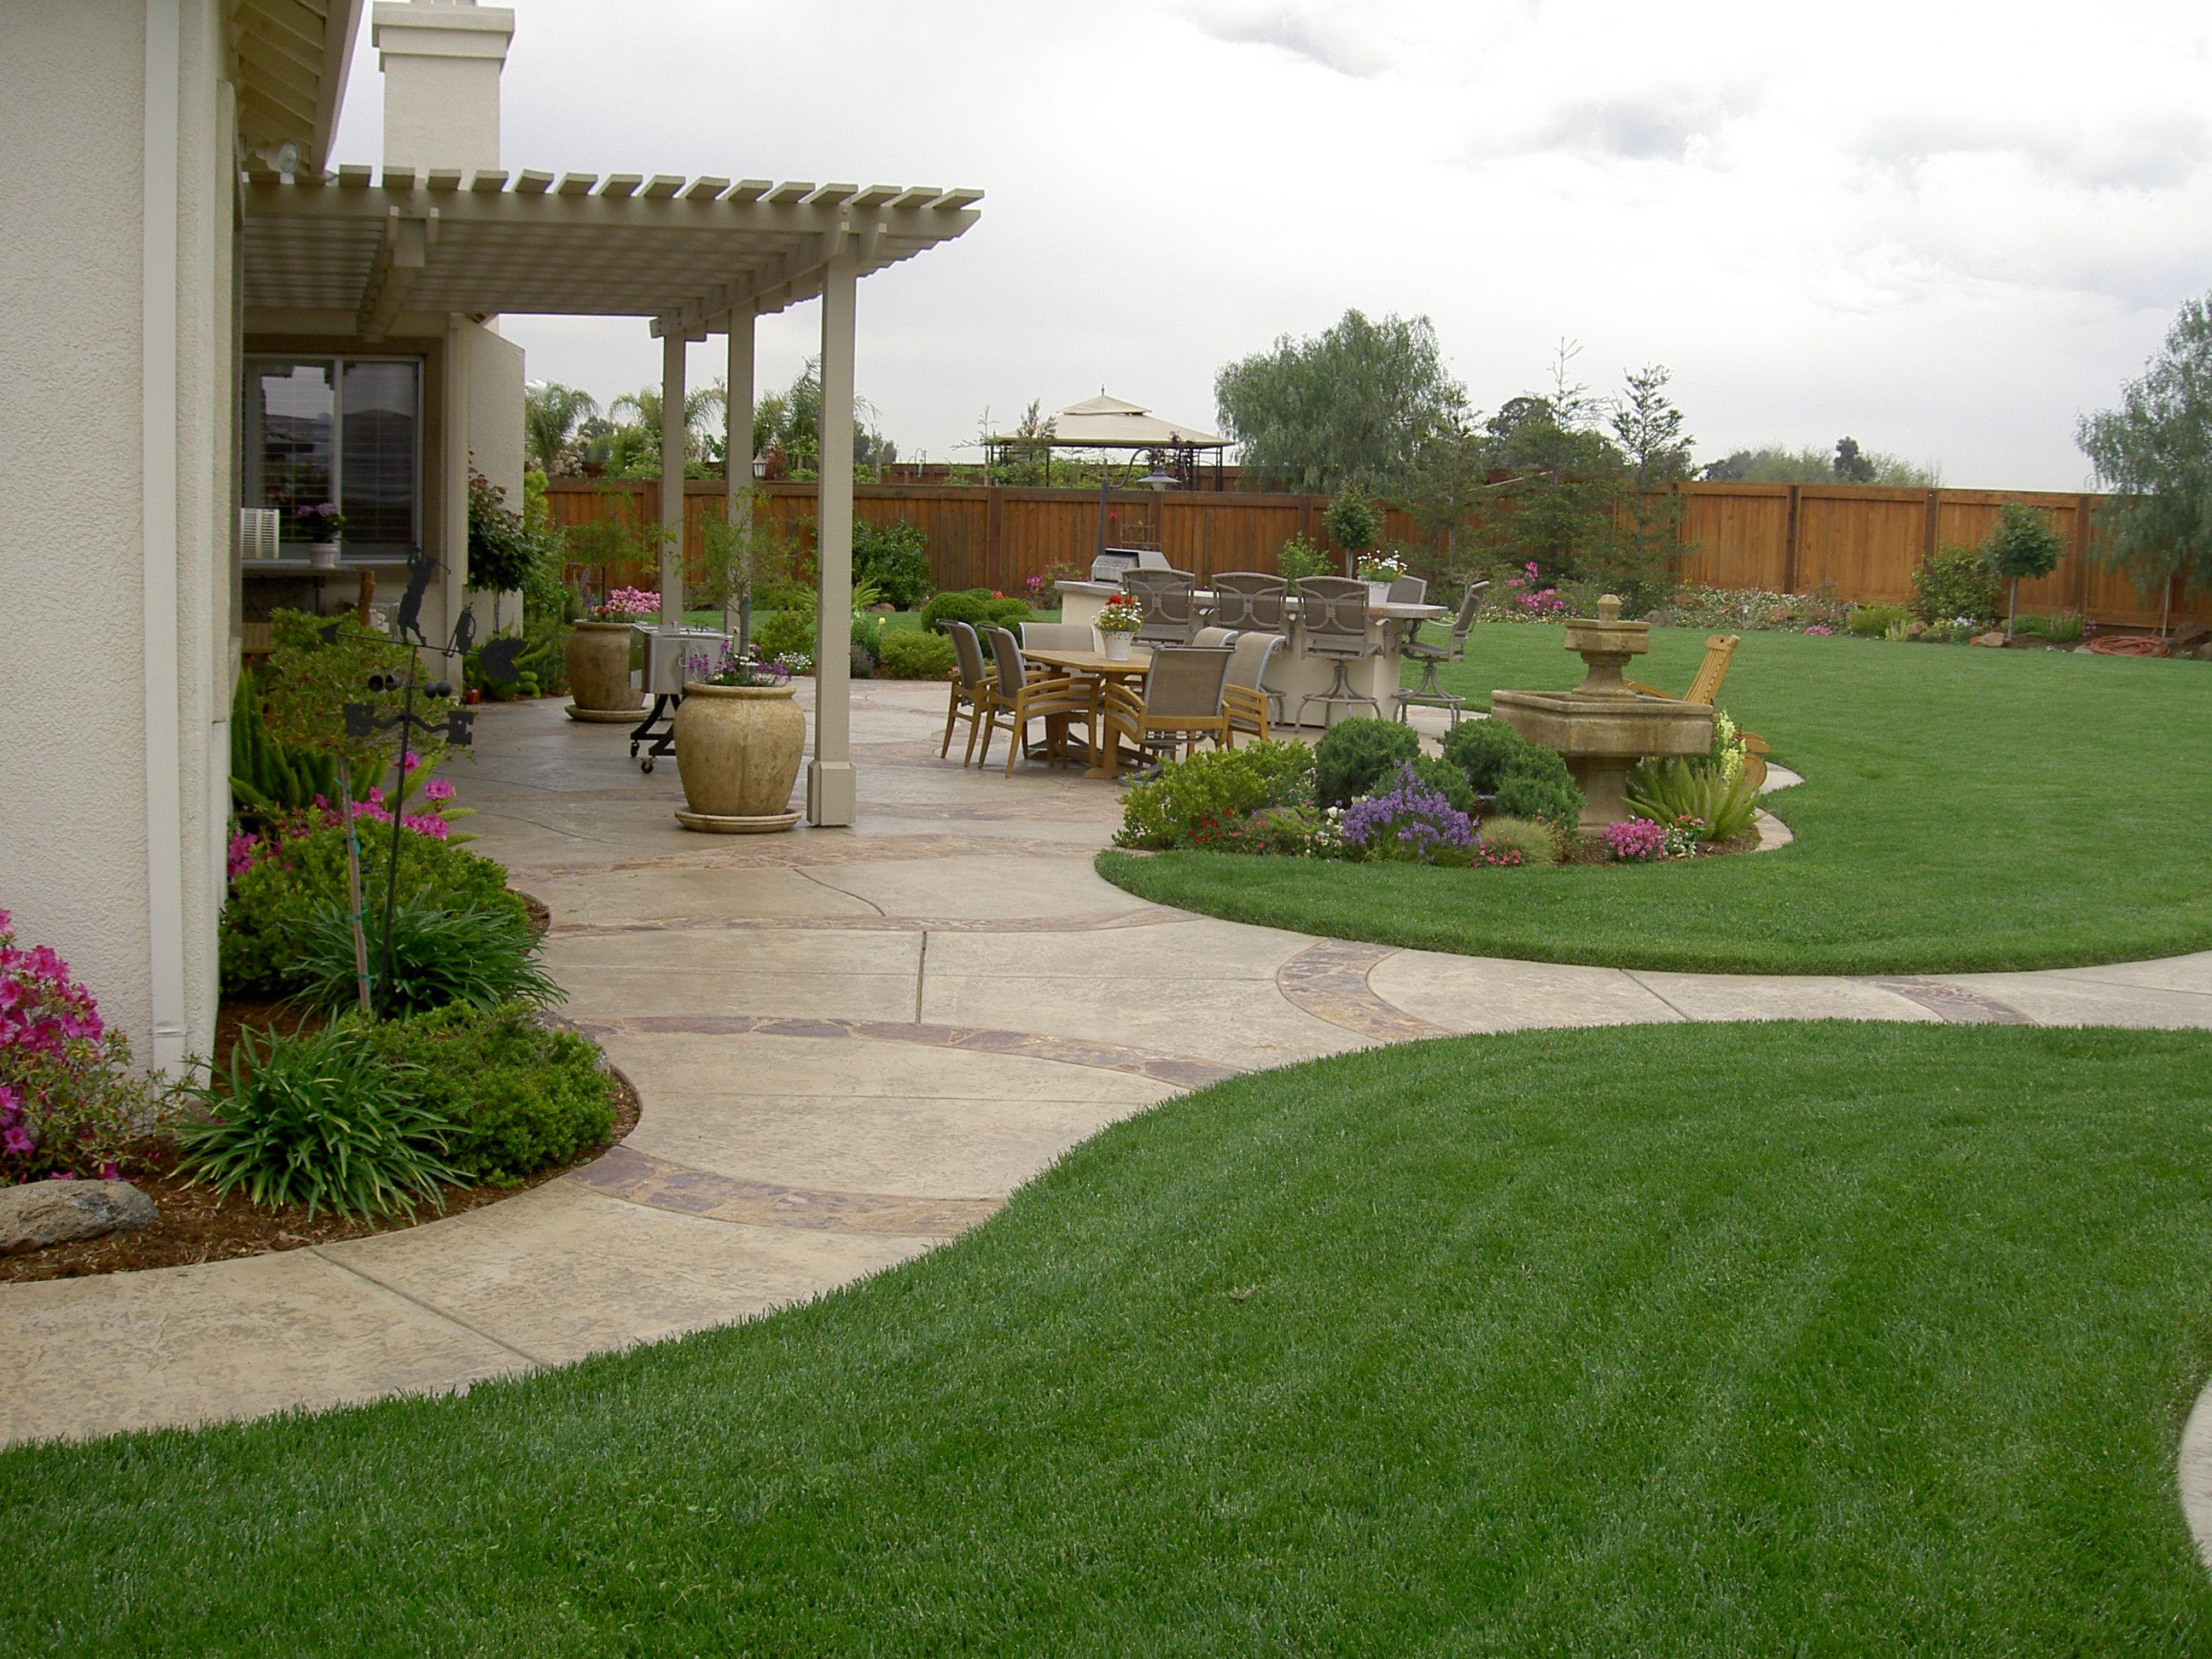 Marvelous Design Of The Green Grass At The Open Wide Areas With Grey Tile Floor As The Landscape Backyard Ideas